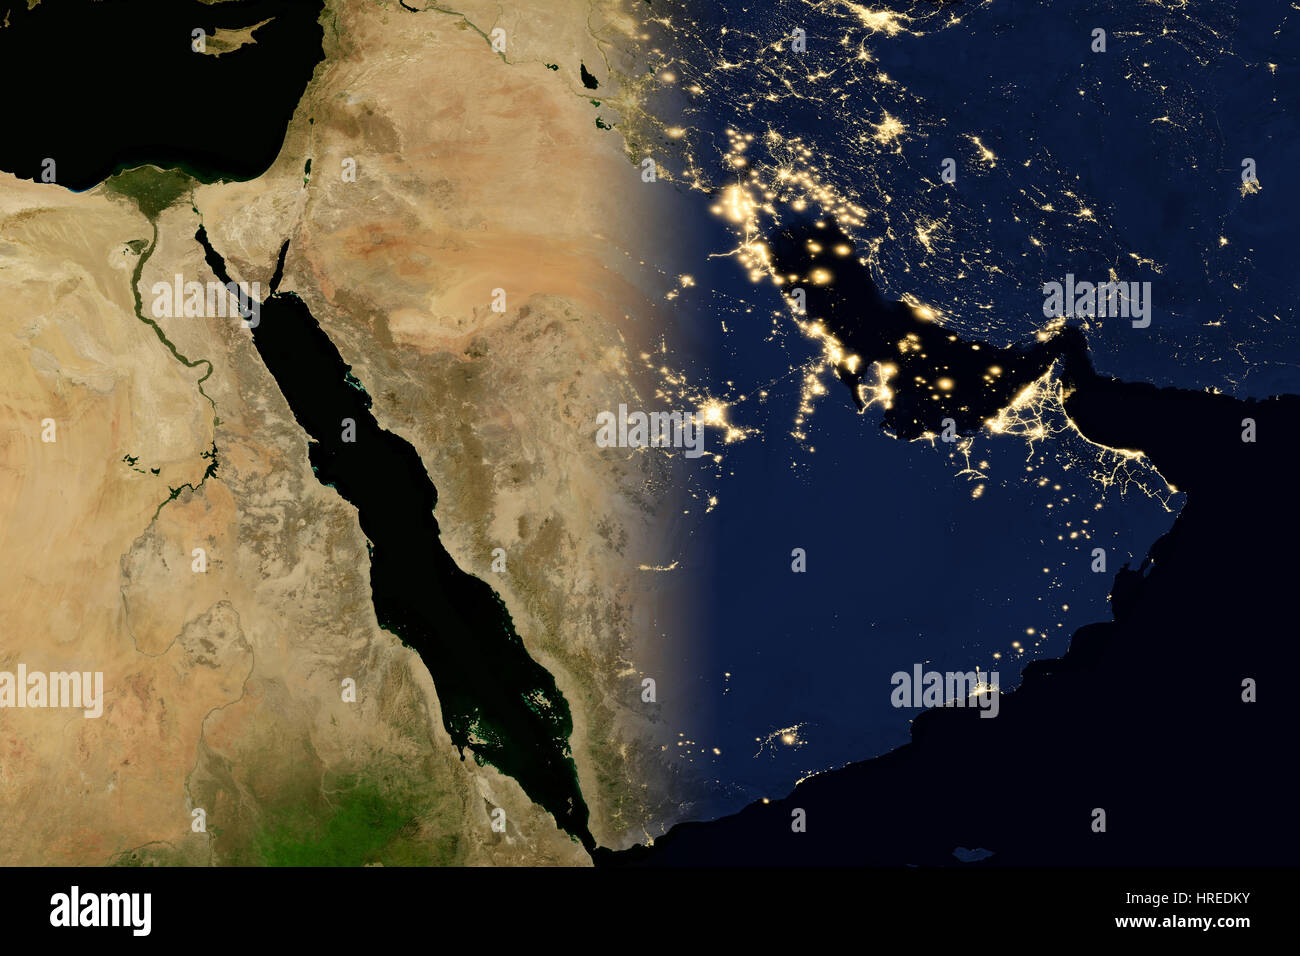 City lights on world map. Arabian Peninsula. Elements of this image are furnished by NASA - Stock Image